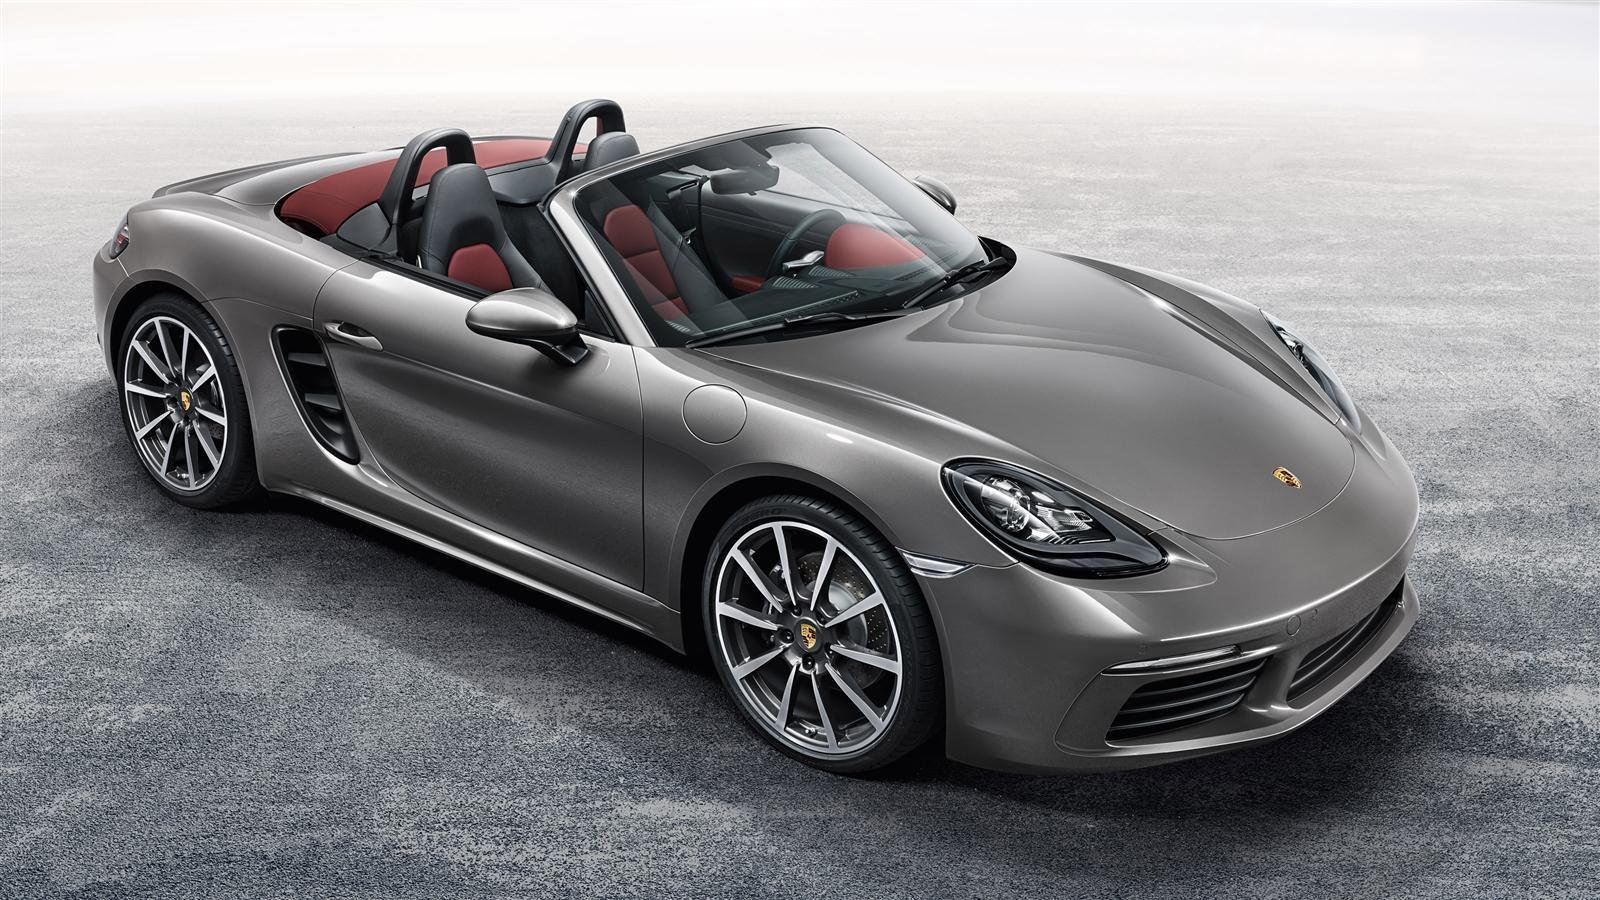 2017 porsche 718 boxster picture 663465 car review. Black Bedroom Furniture Sets. Home Design Ideas